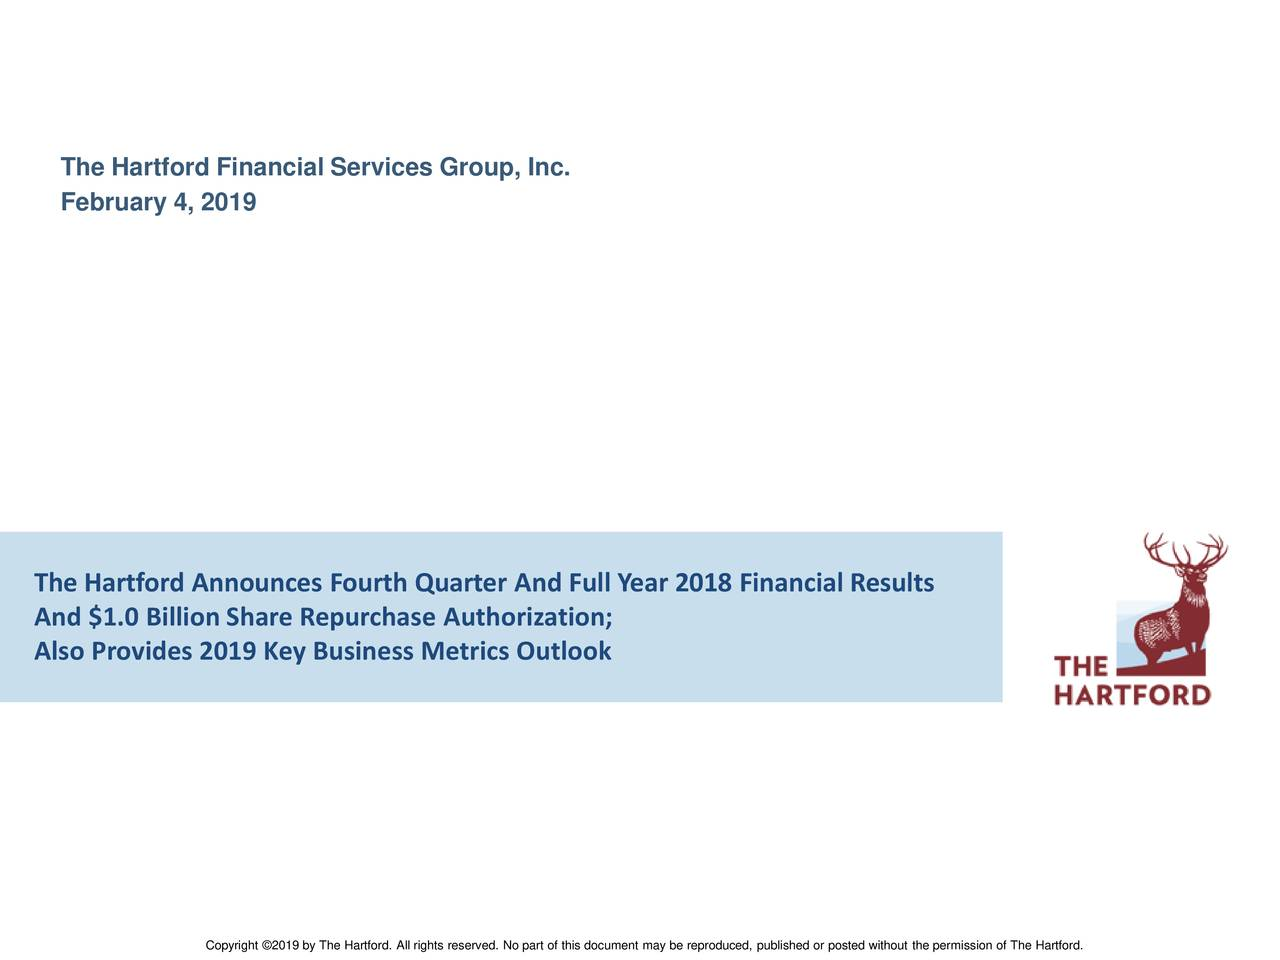 February 4, 2019 The Hartford Announces Fourth Quarter And Full Year 2018 Financial Results And $1.0 Billion Share Repurchase Authorization; Also Provides 2019 Key Business Metrics Outlook